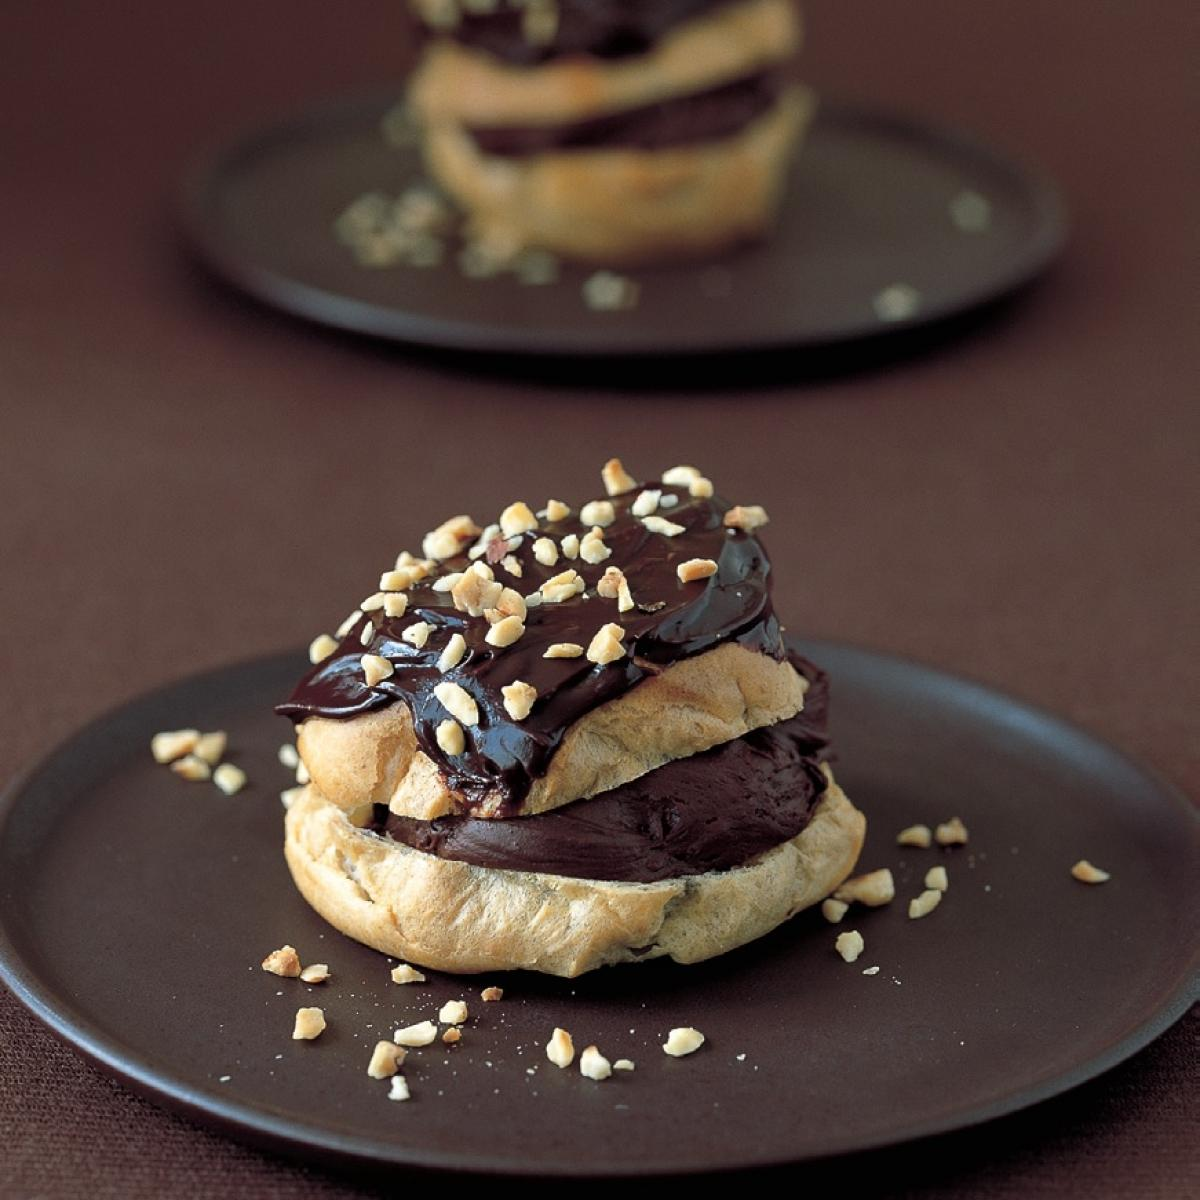 A picture of Delia's How to make choux pastry how to cook guide